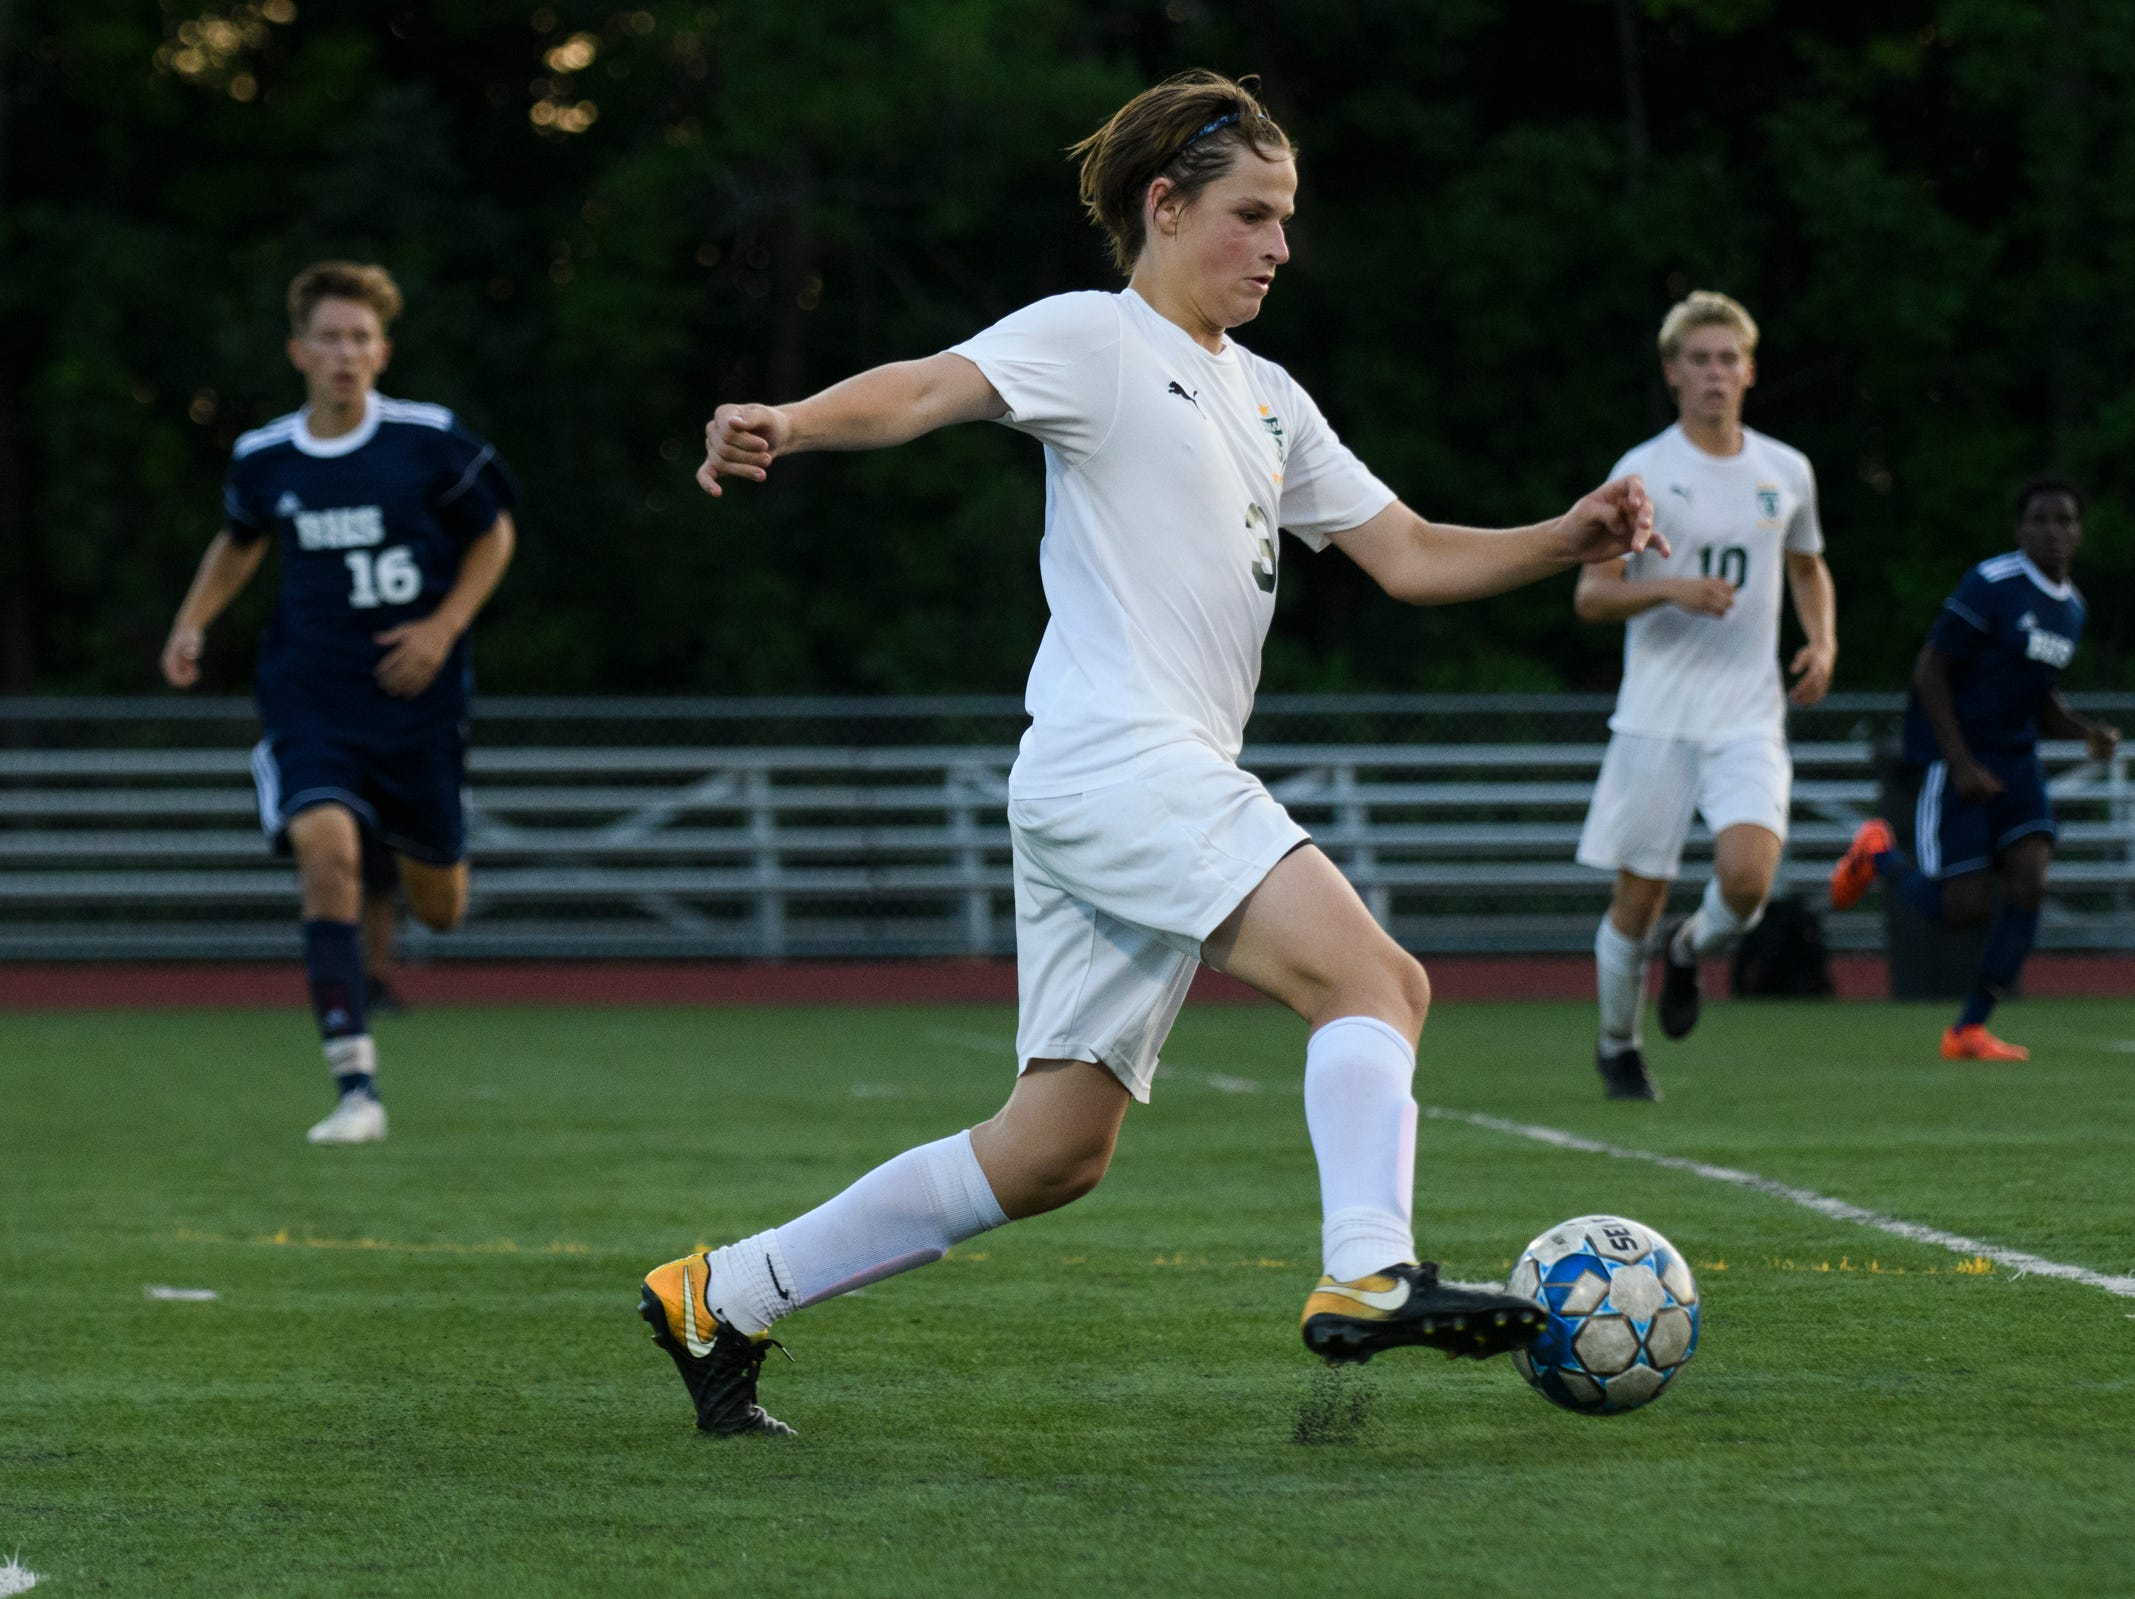 Stowe's Hans Huber plays the ball during the boys soccer game between Stowe and Burlington at Buck Hard field on Wednesday night September 5, 2018 in Burlington.